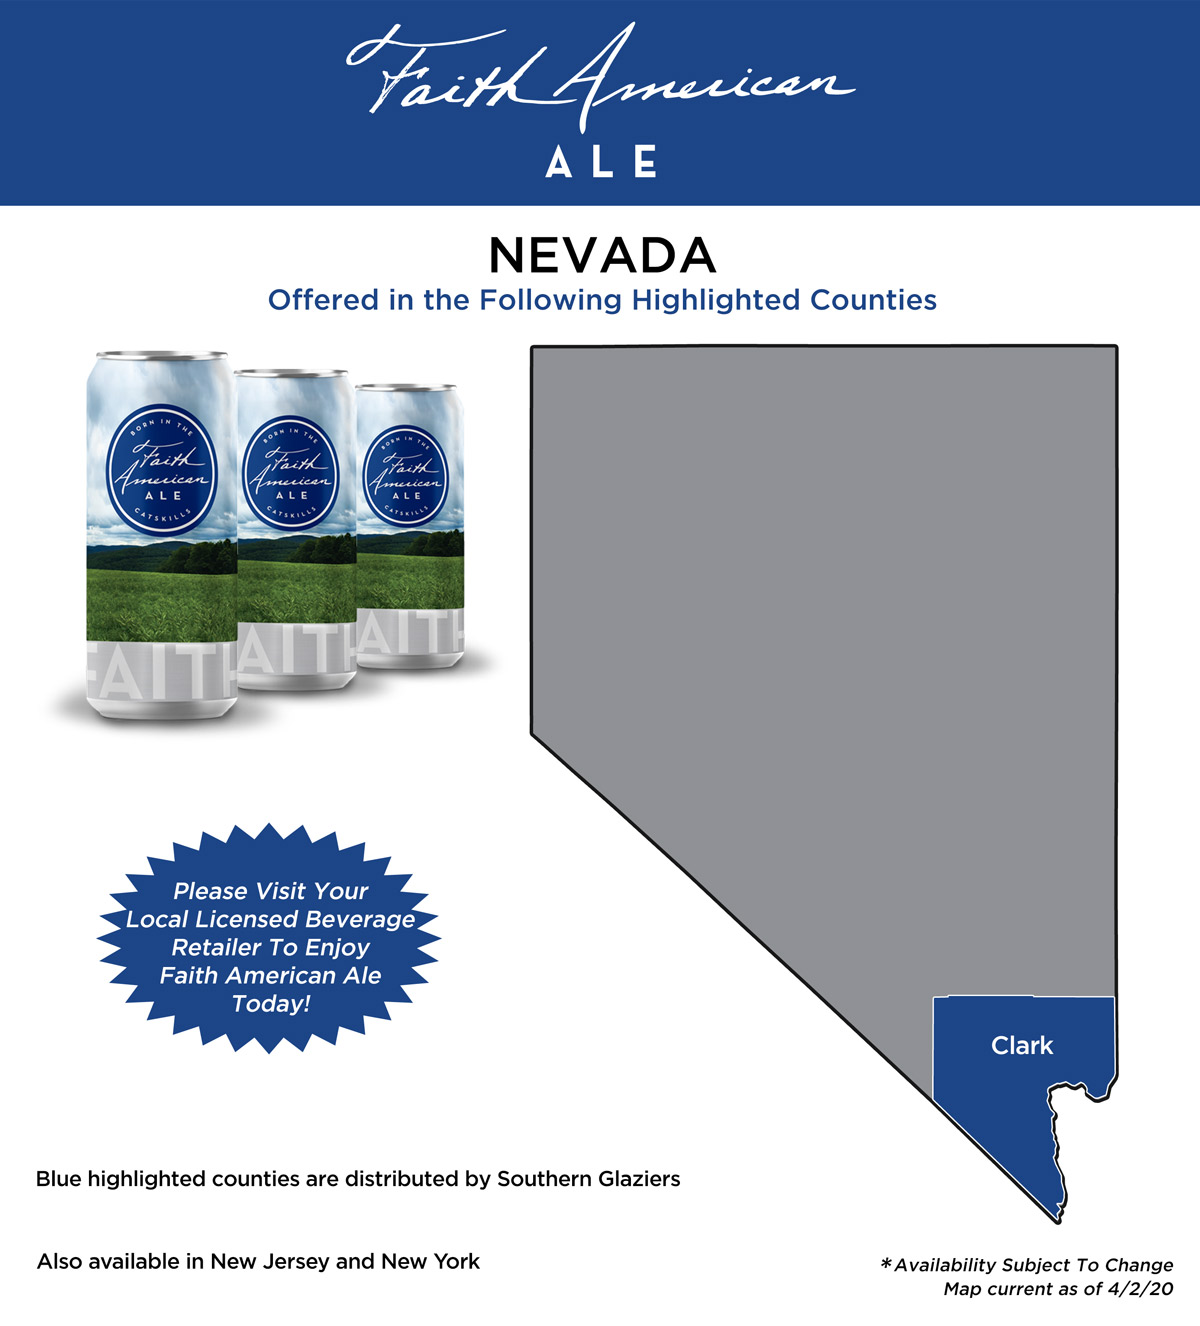 Nevada mad showing where Faith American Ale is available